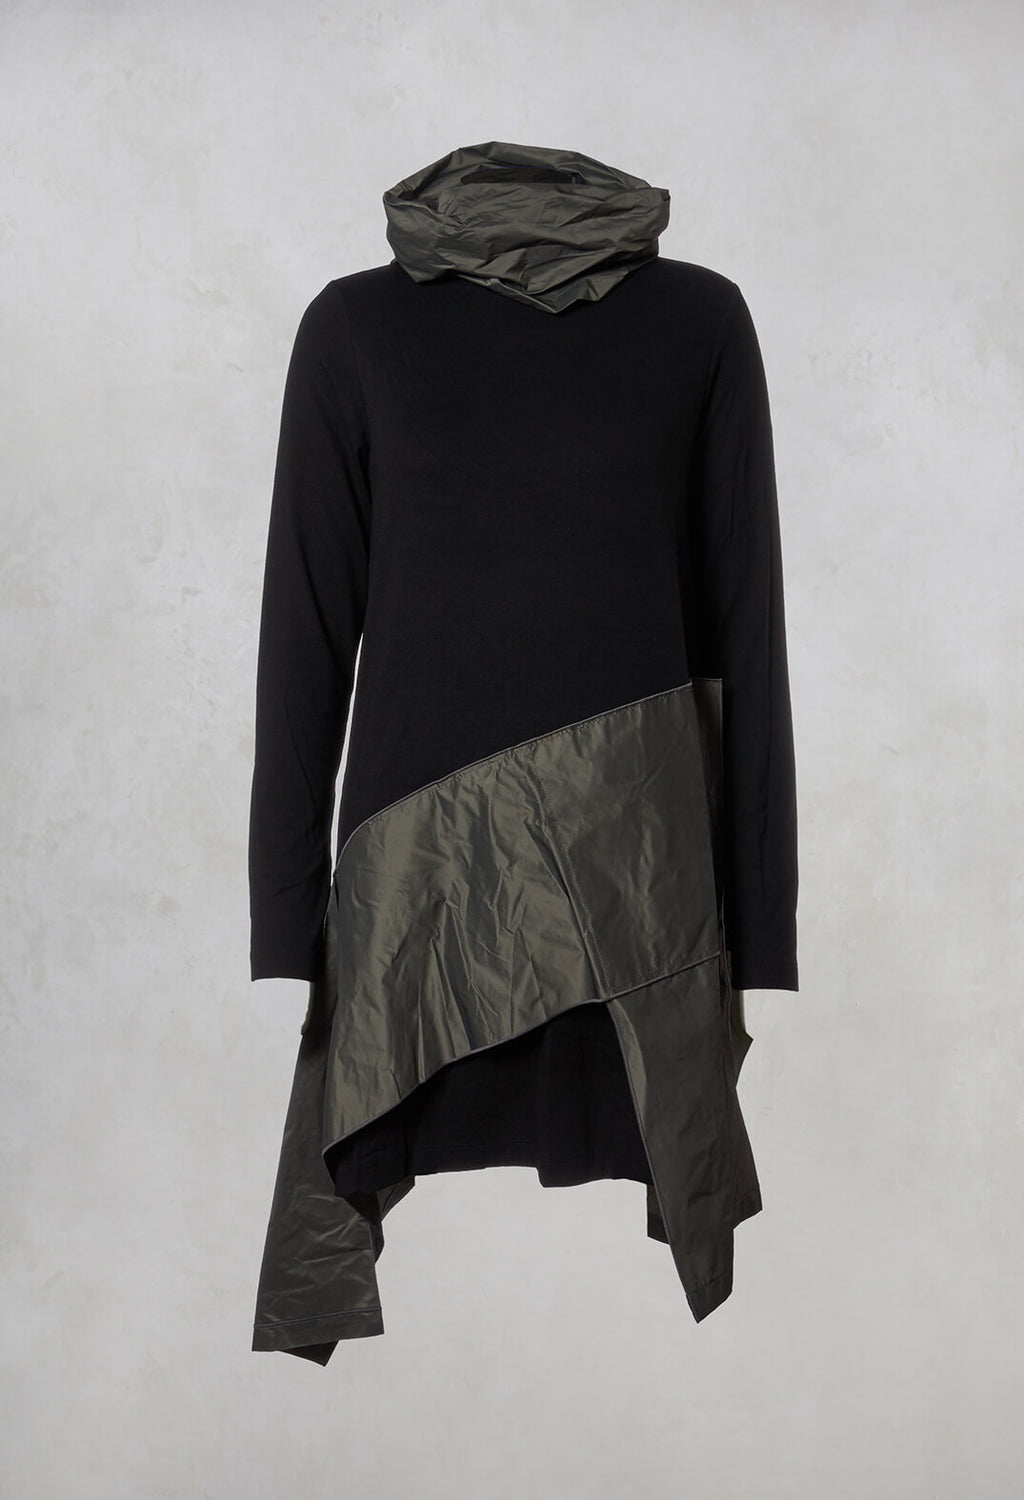 Asymmetric Tunic in Black / Olive